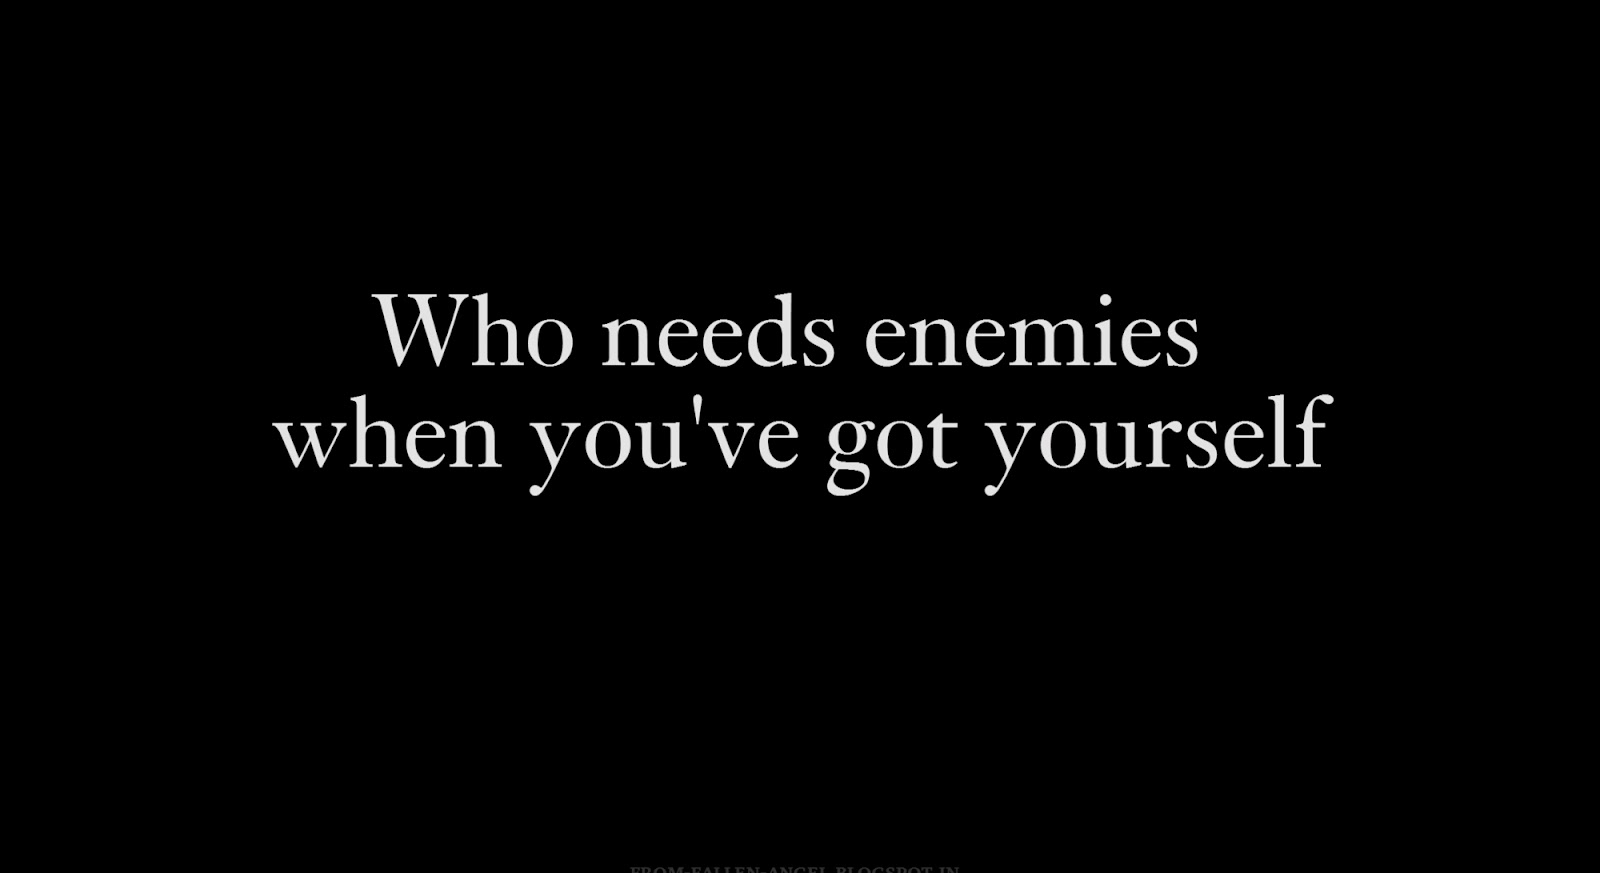 Who needs enemies when you've got yourself